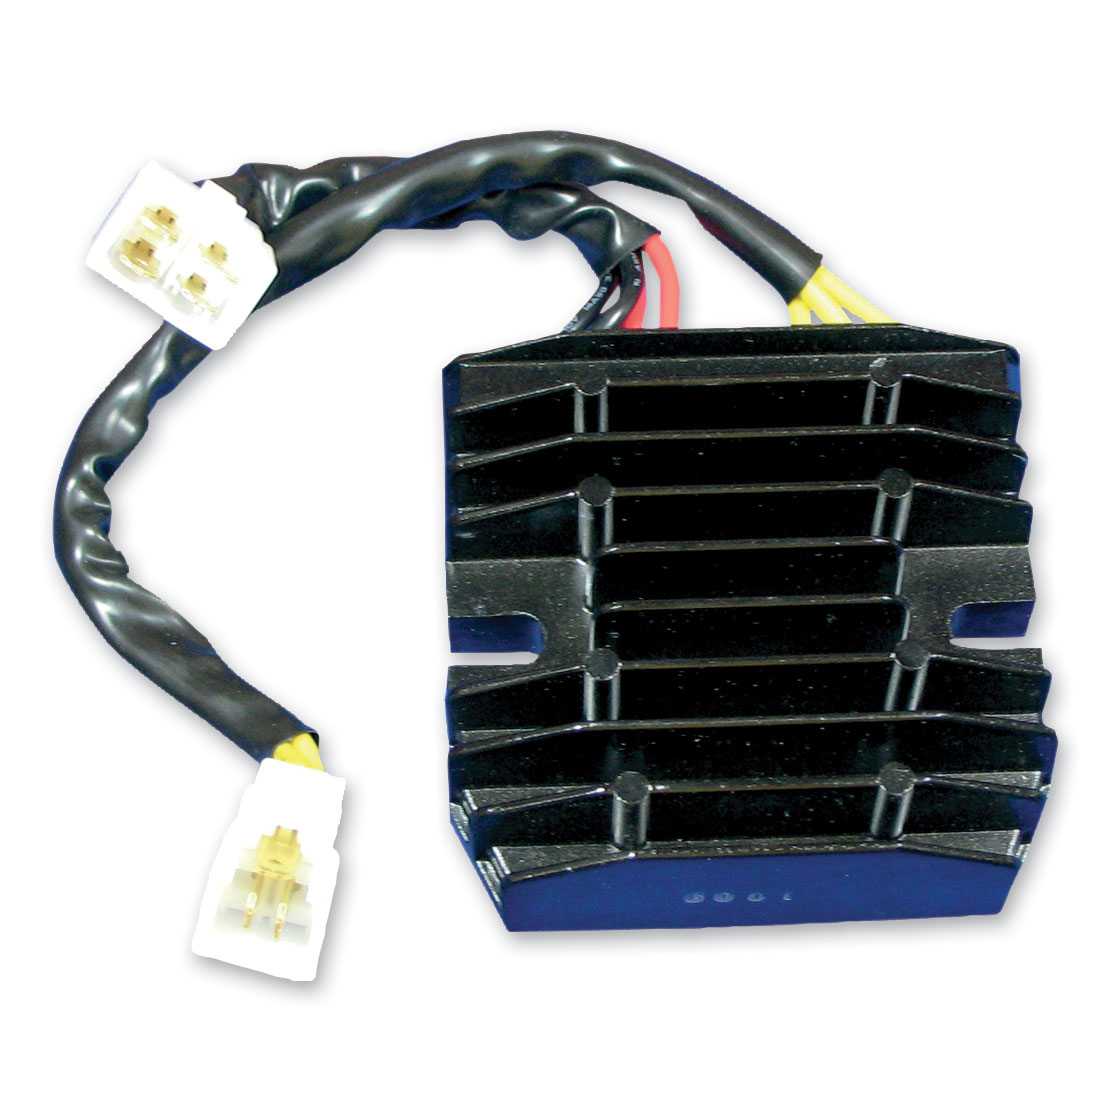 Rick's Motorsport Electrics, Inc. Hot Shot Series Voltage Regulator/Rectifier